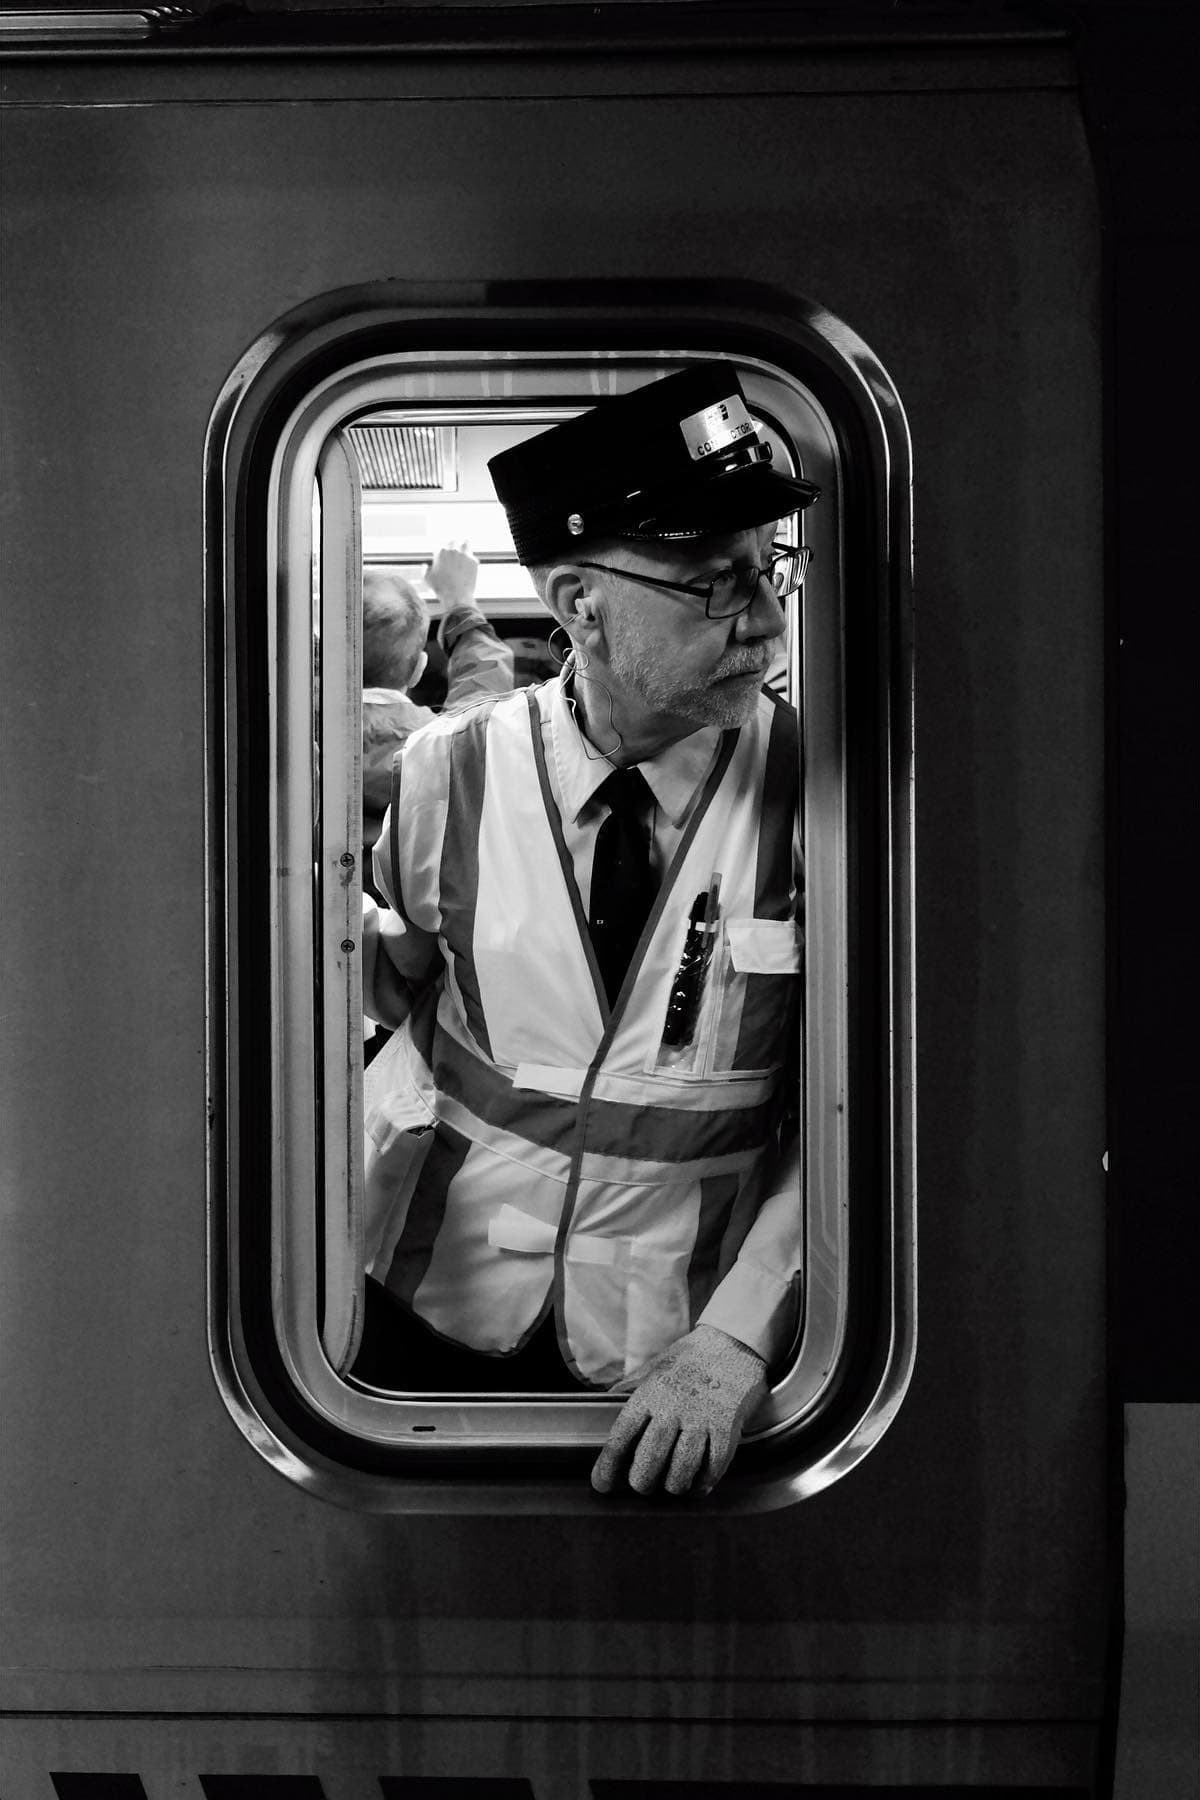 path train conductor at 14th street station staring ahead out of train window